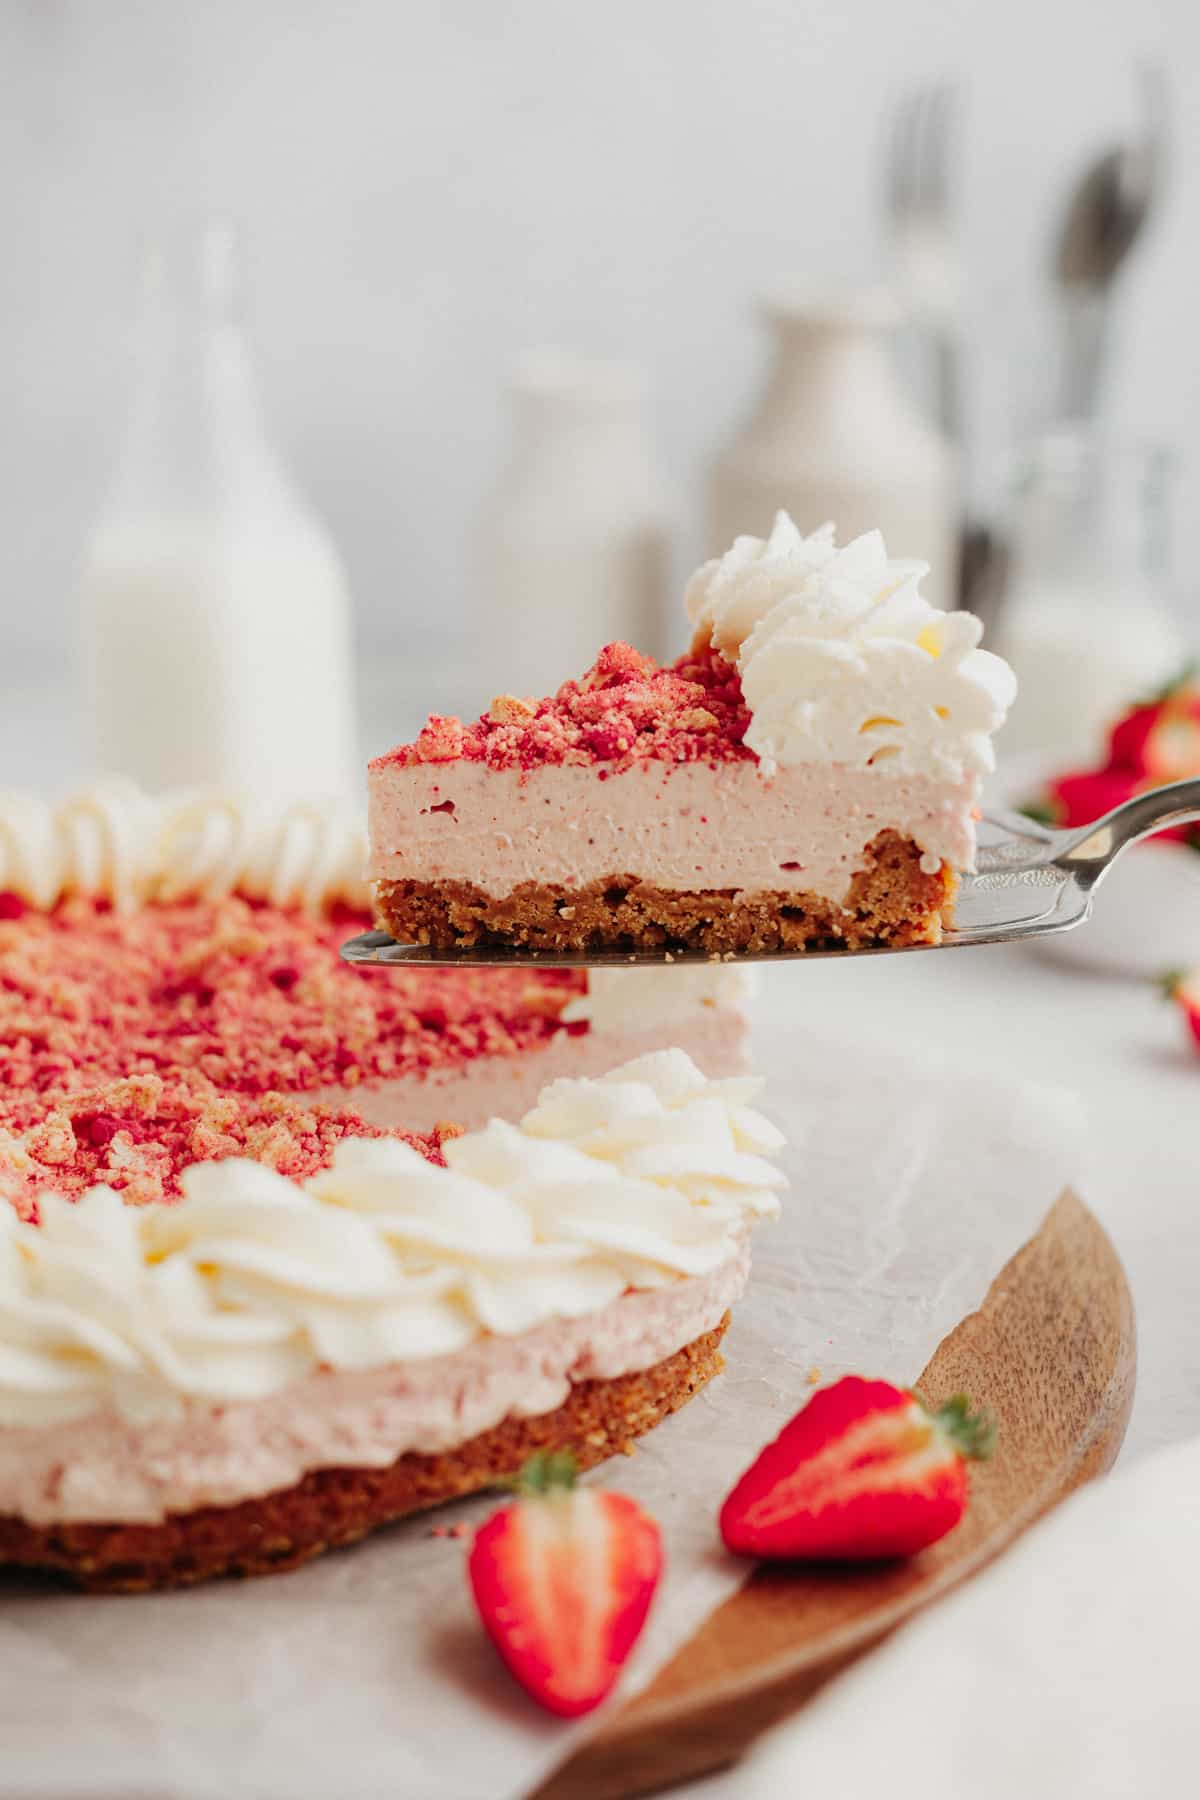 A slice of strawberry crunch cheesecake being lifted out with a silver cake server. The cheesecake is on a wooden platter.